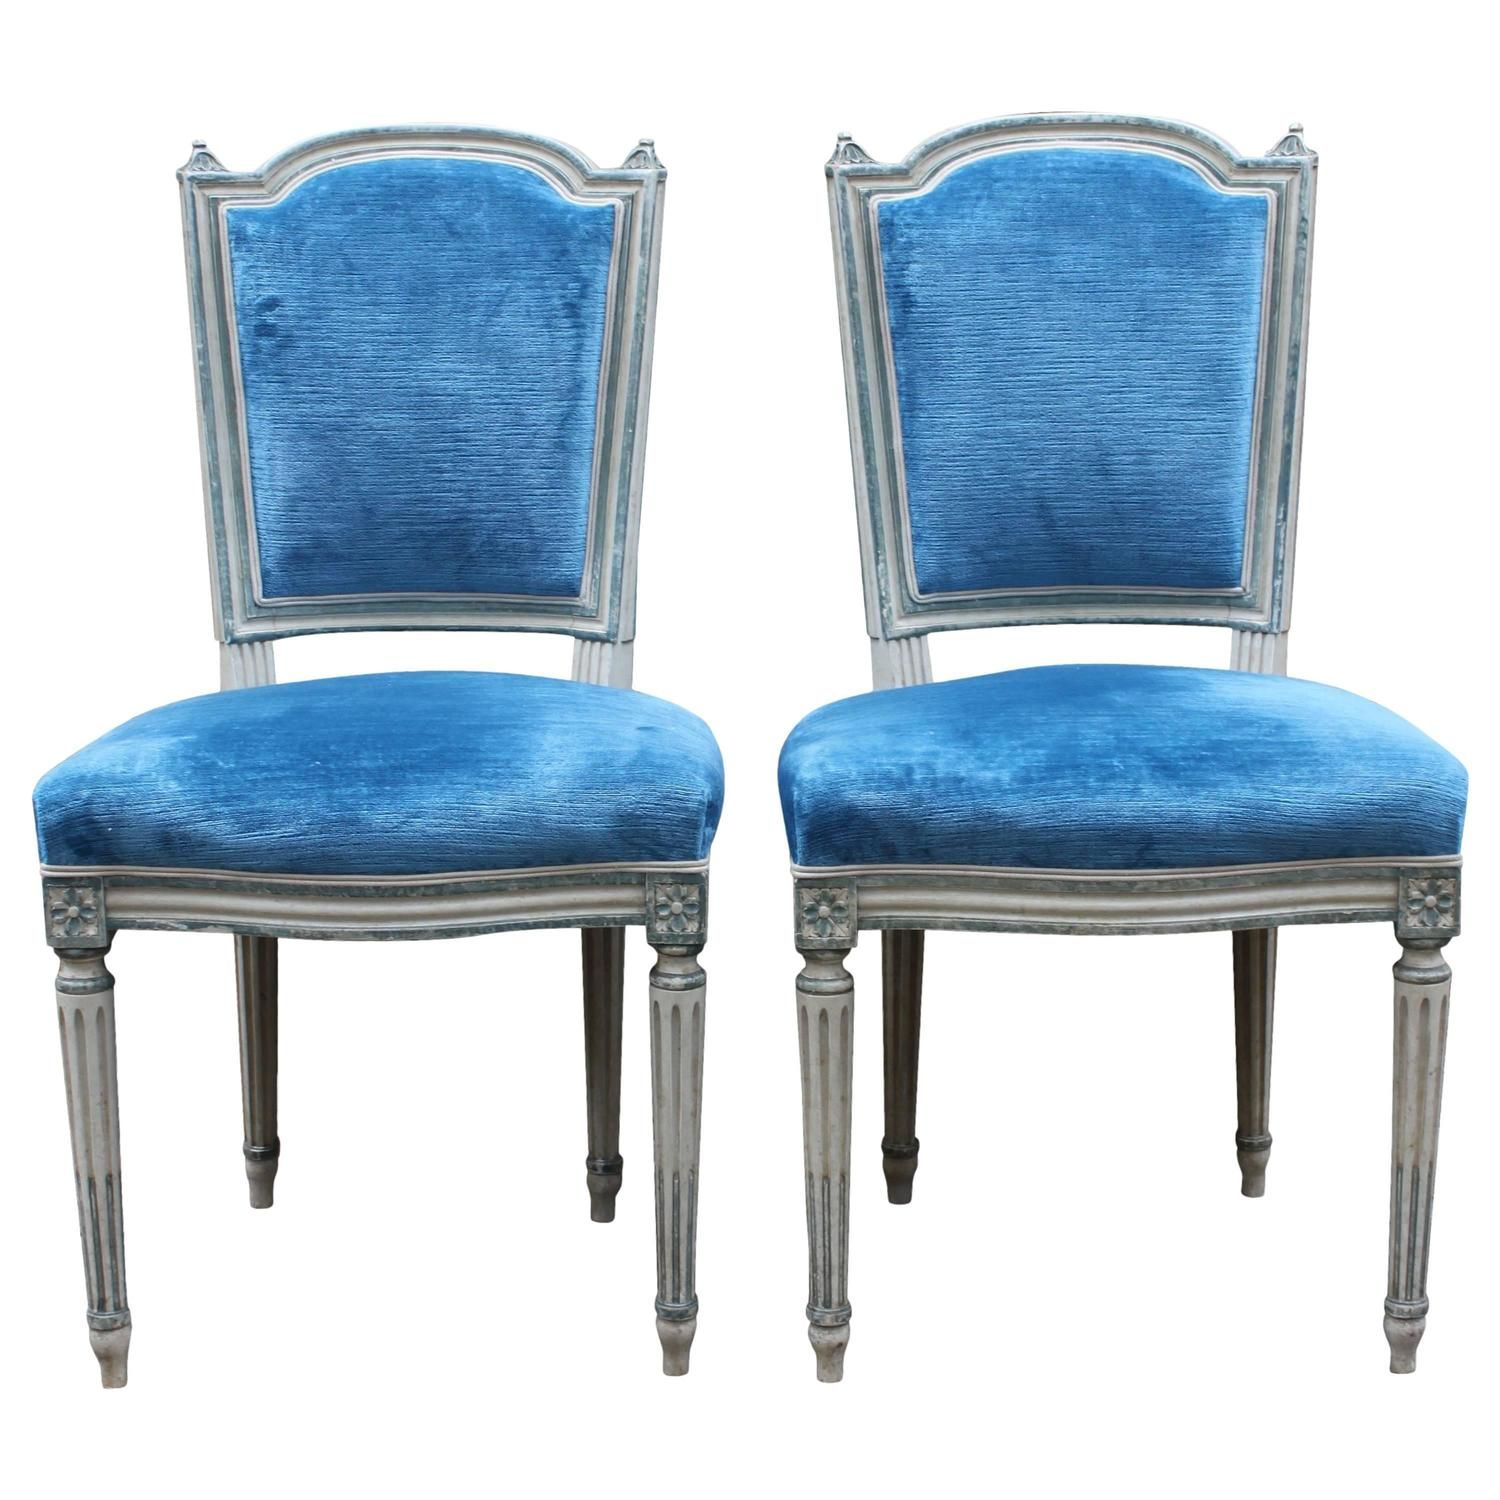 Pair Of French Blue And White Painted Louis XVI Style Dining Side Chairs,  1940s